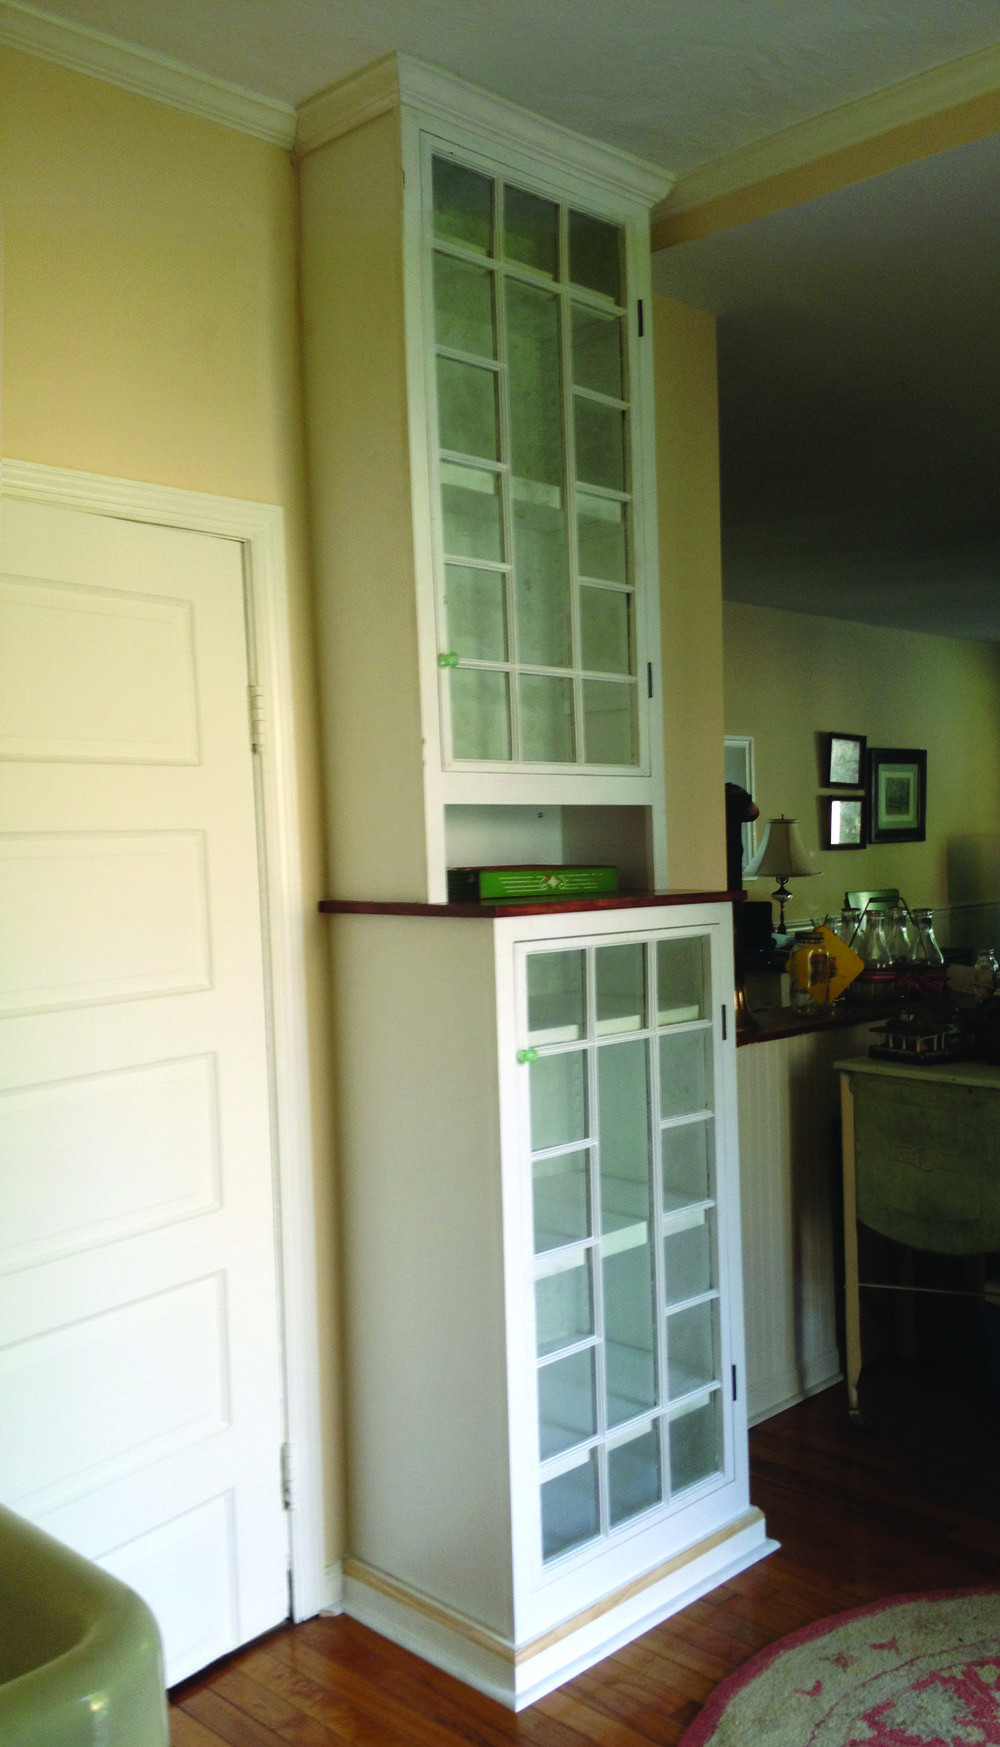 The finished cabinet installed in the client's home. She opted to do the finish painting herself, so these pictures only show the primed unit.